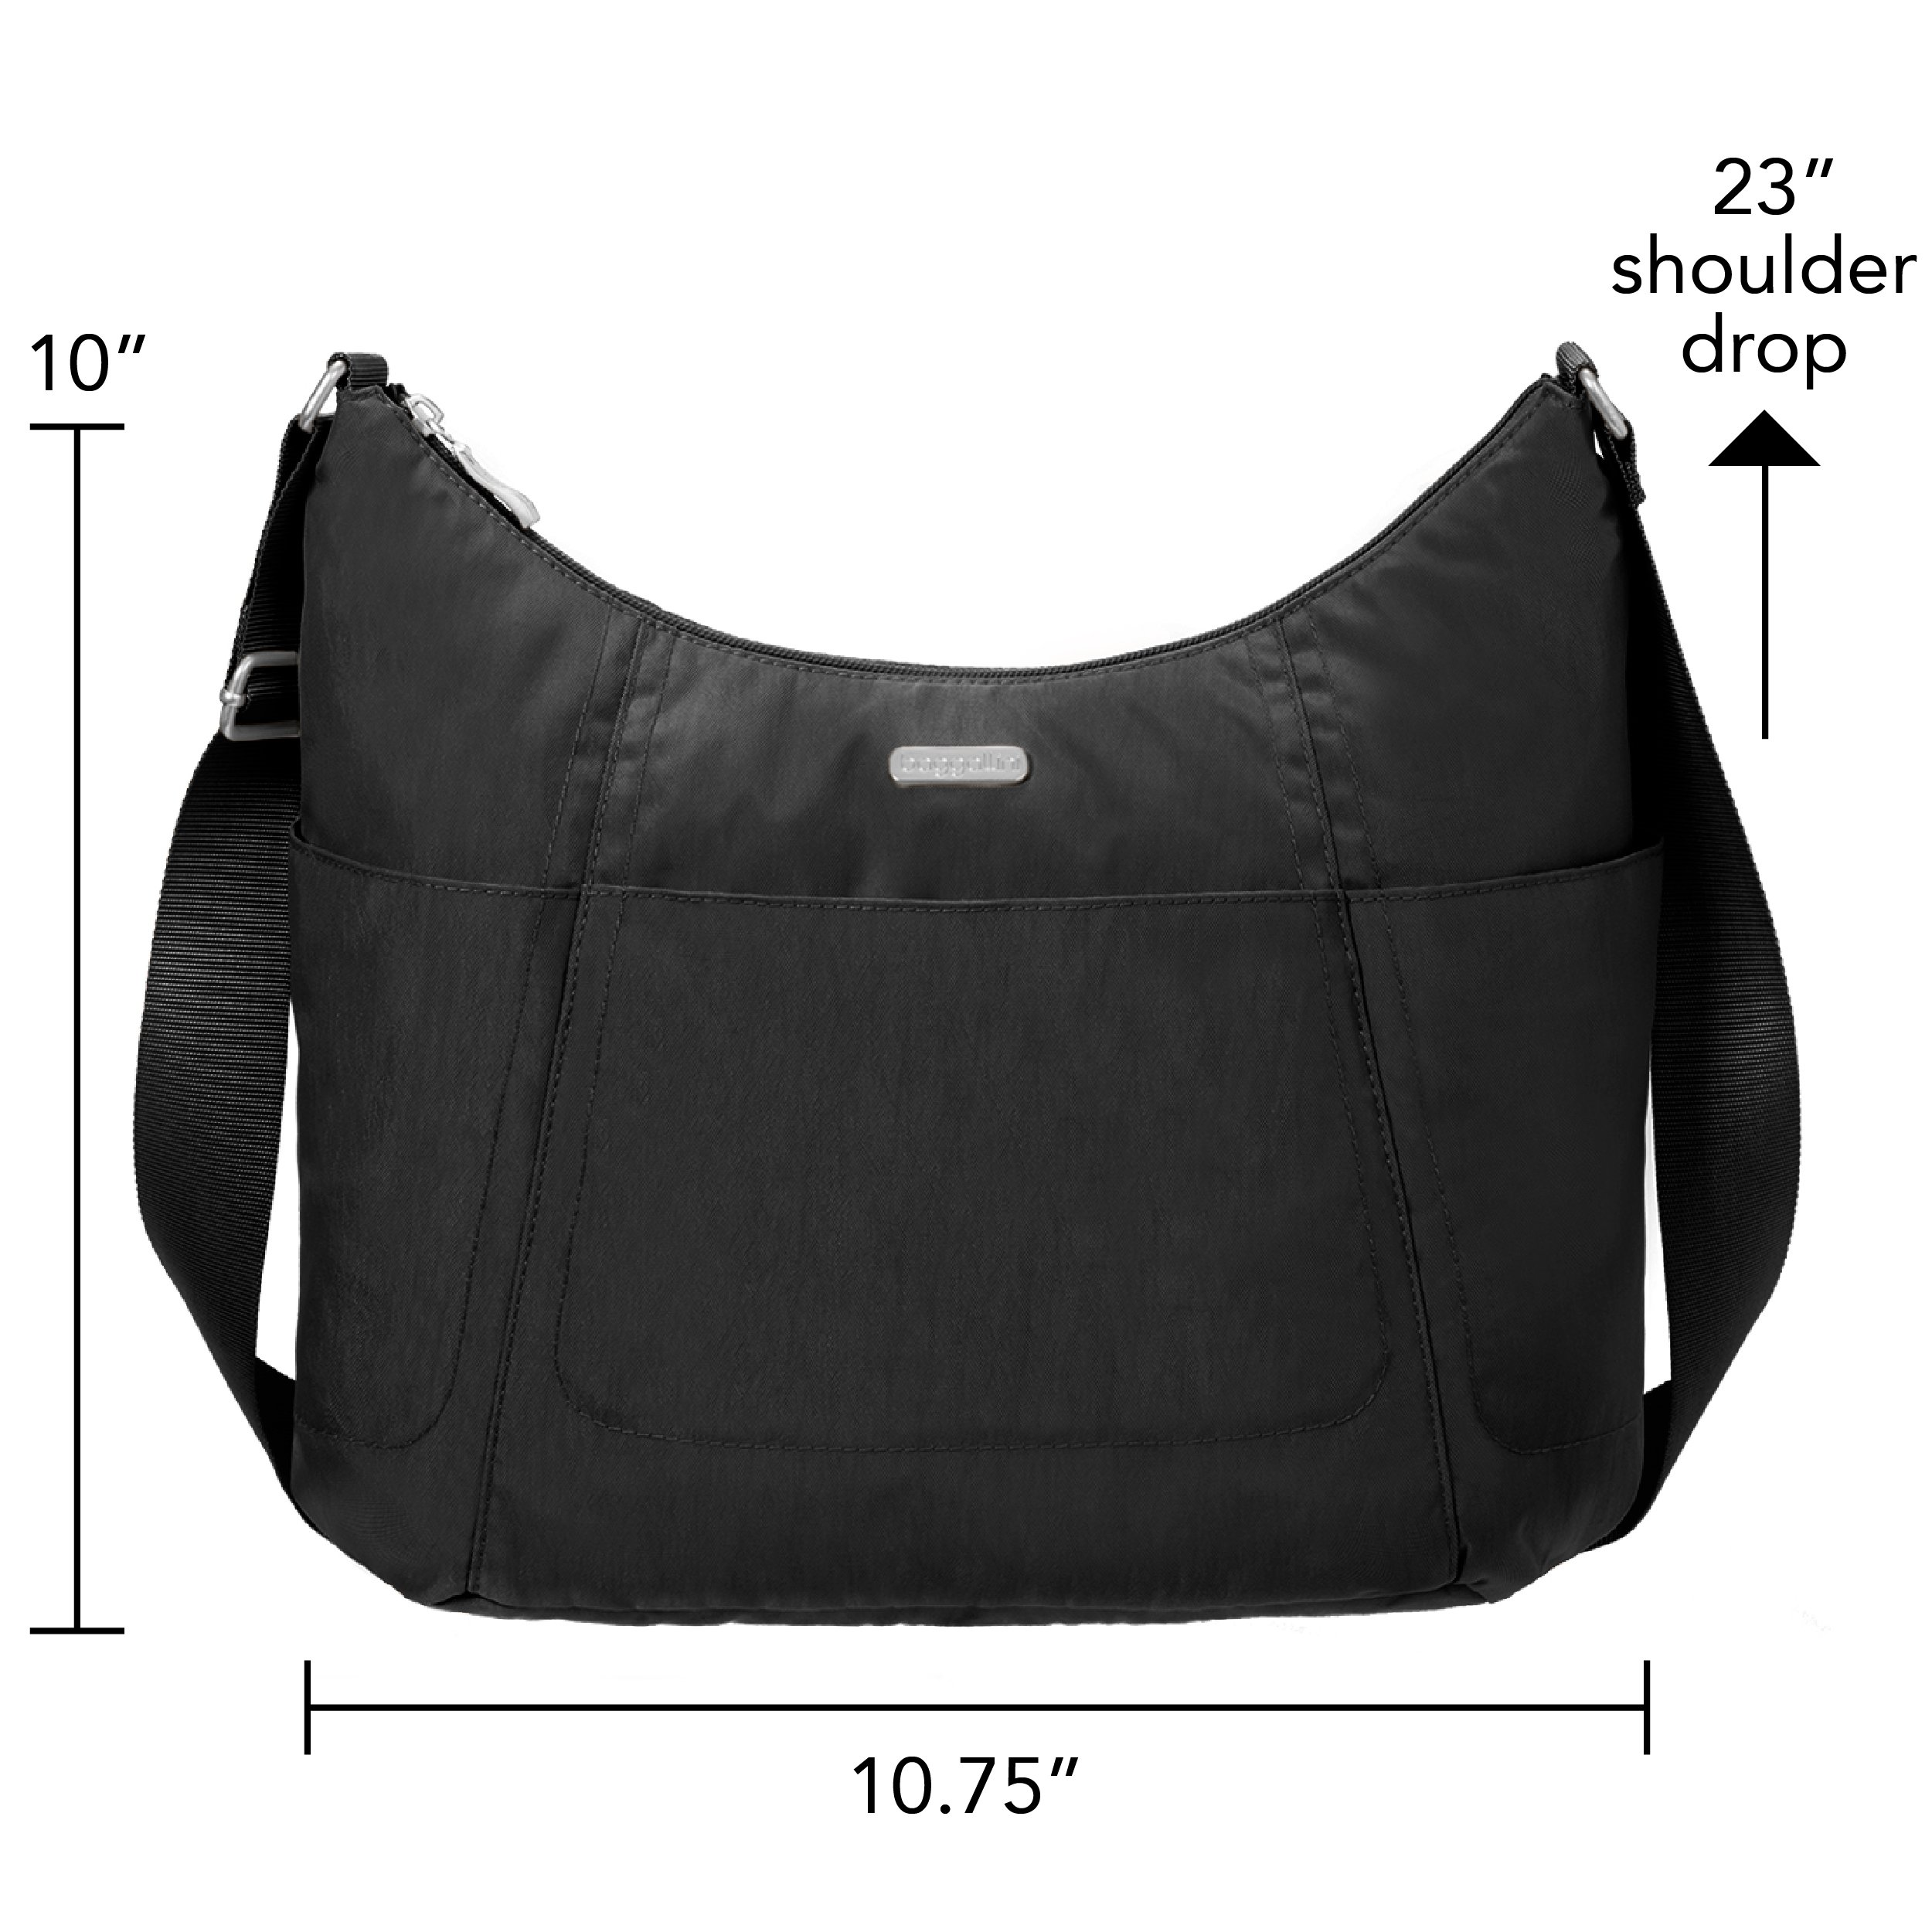 Baggallini Hobo Travel Tote, Black, One Size by Baggallini (Image #2)